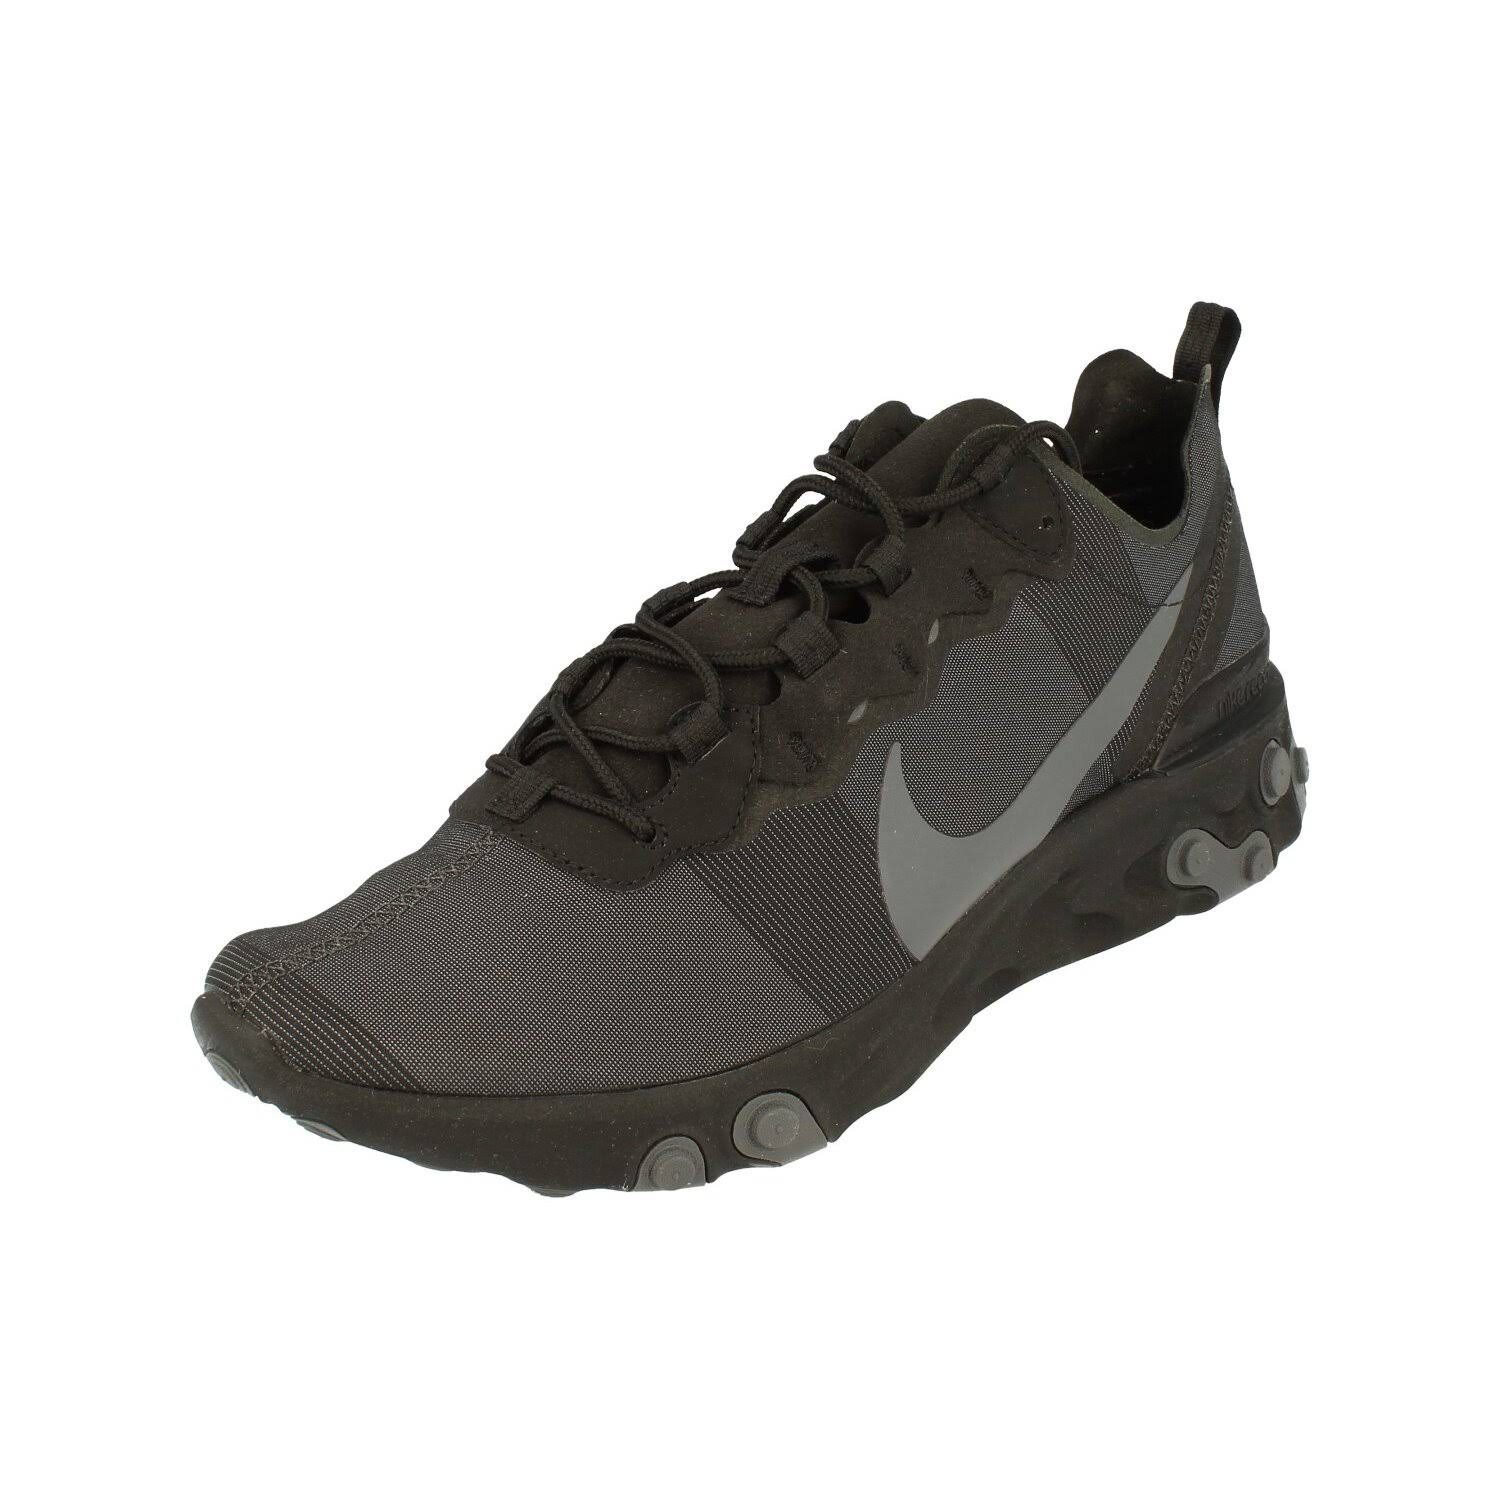 (6) Nike React Element 55 Mens Running Trainers Bq6166 Sneakers Shoes